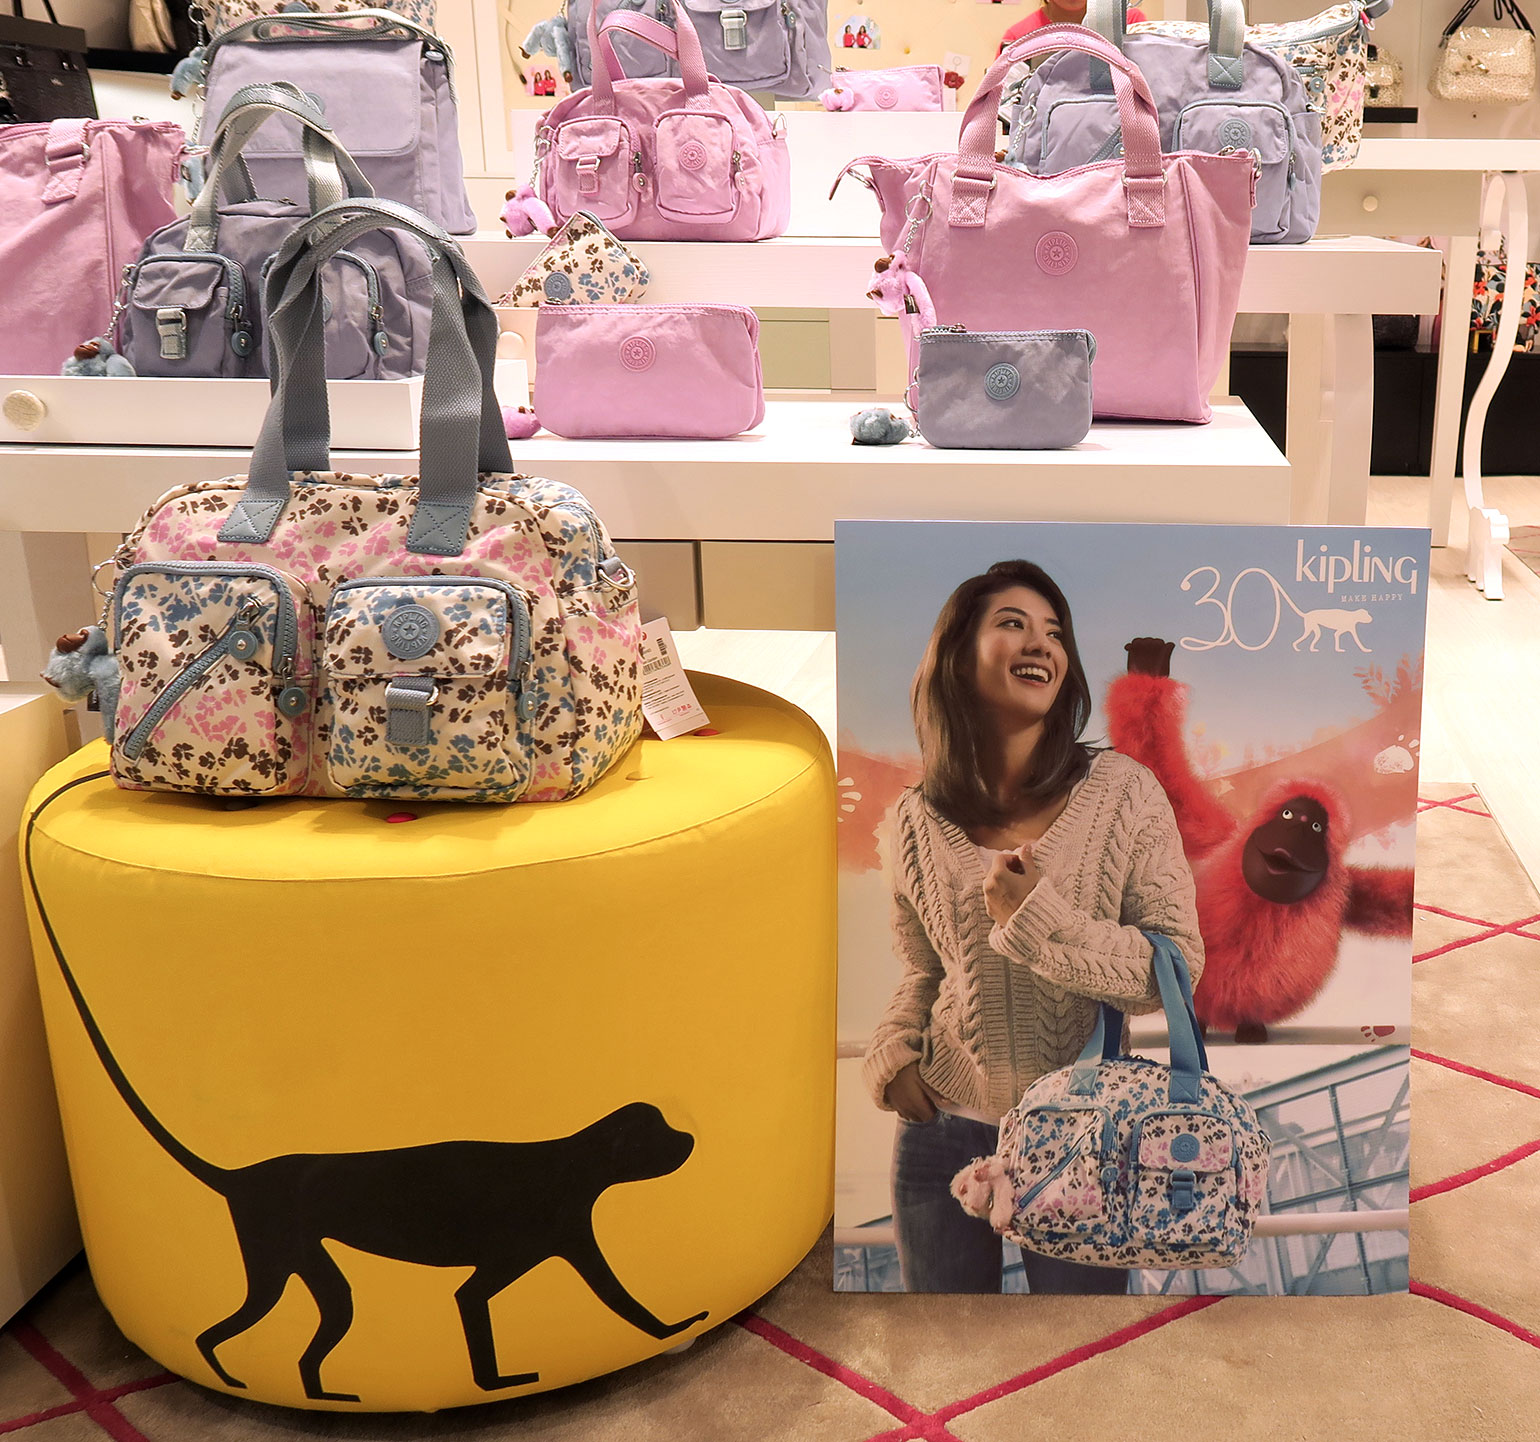 4 Kipling Philippines 30 years - Uptown Mall - Dream Garden Collection - Gen-zel.com(c)